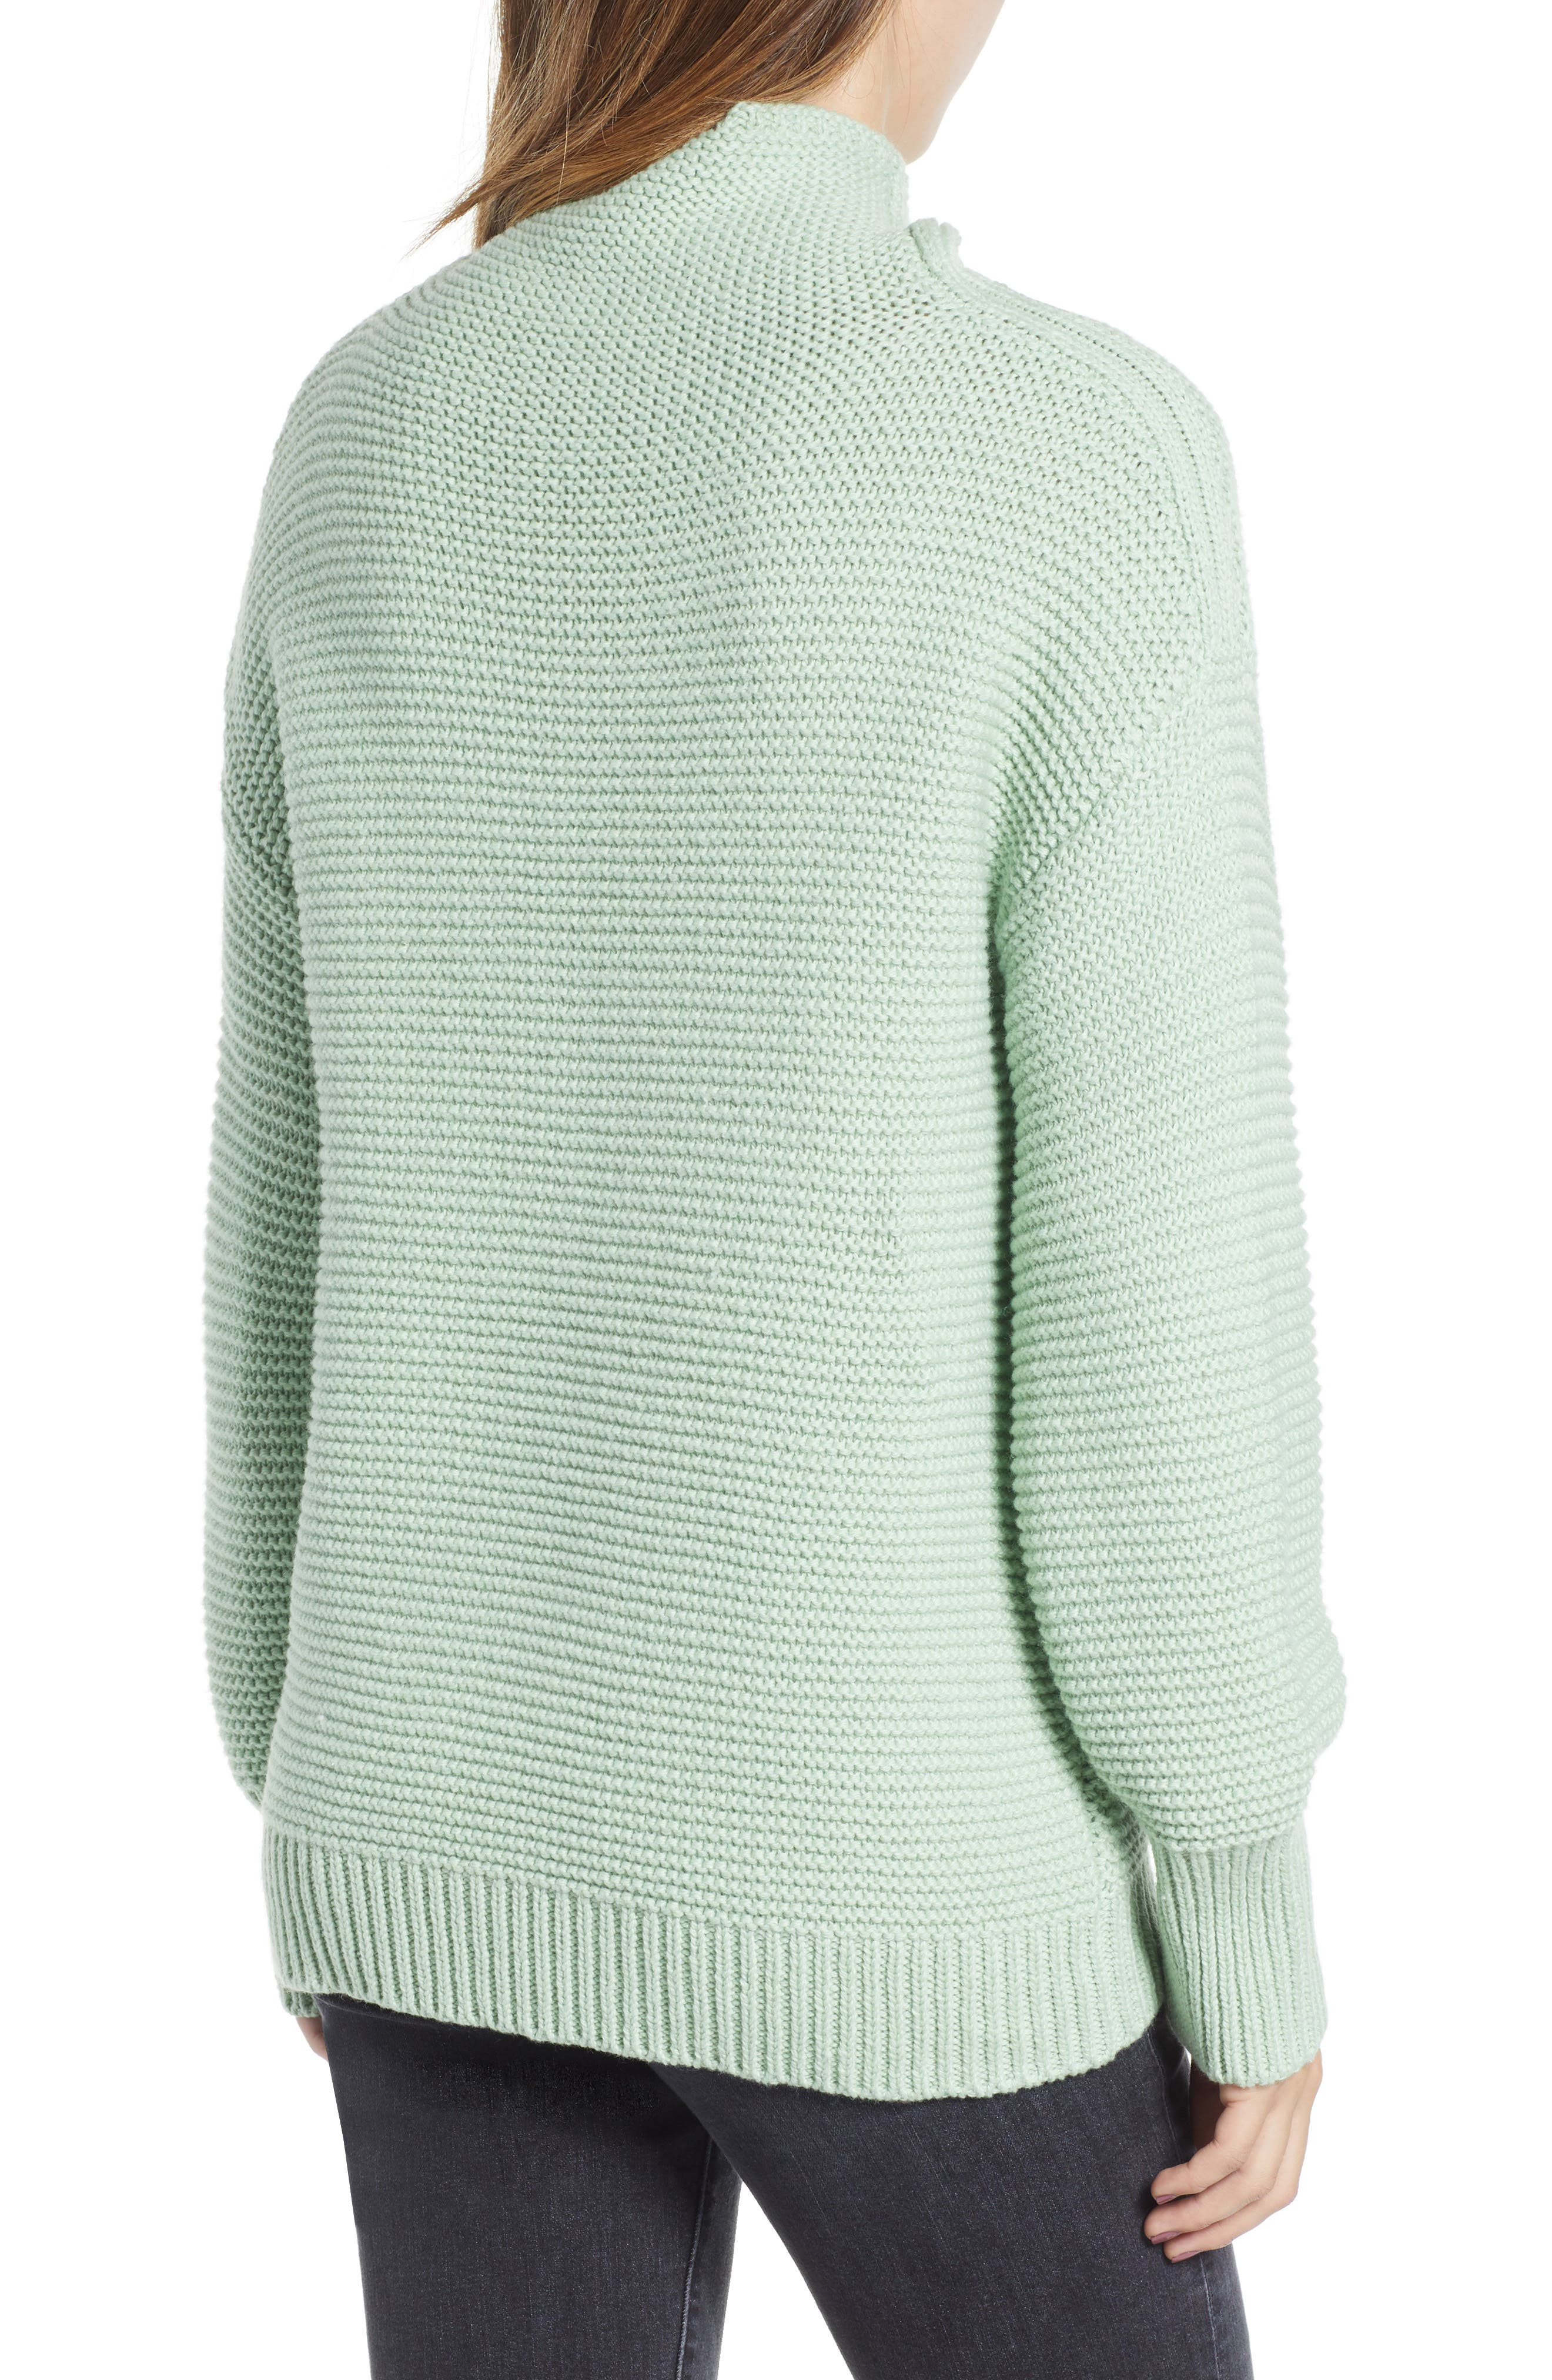 Turtleneck Sweater,                             Alternate thumbnail 2, color,                             GREEN GHOST